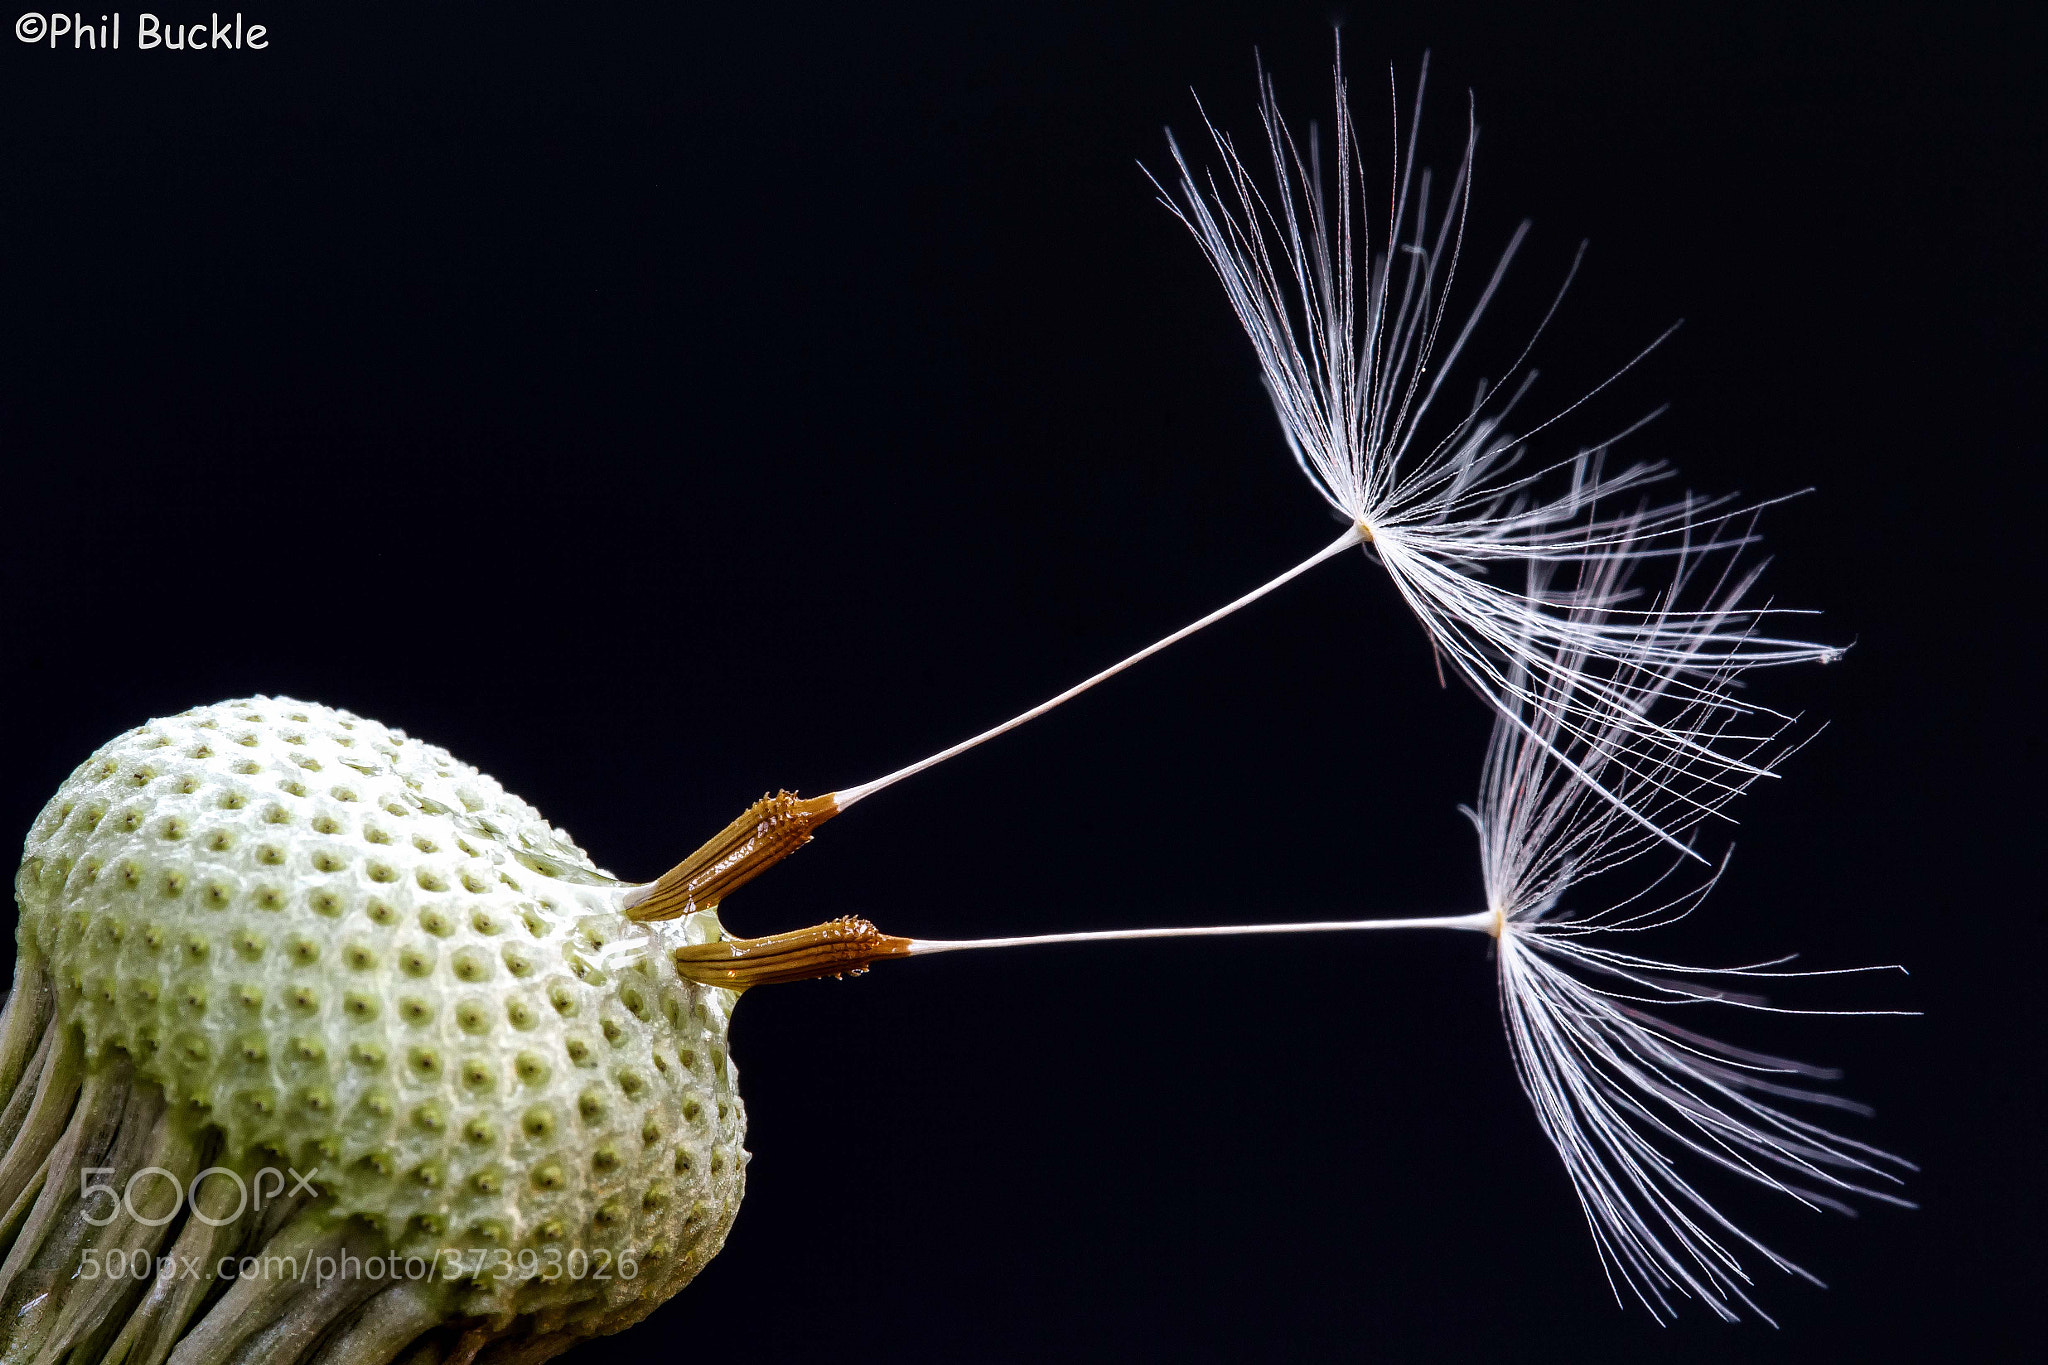 Photograph Dandelion Ballet by Phil Buckle on 500px